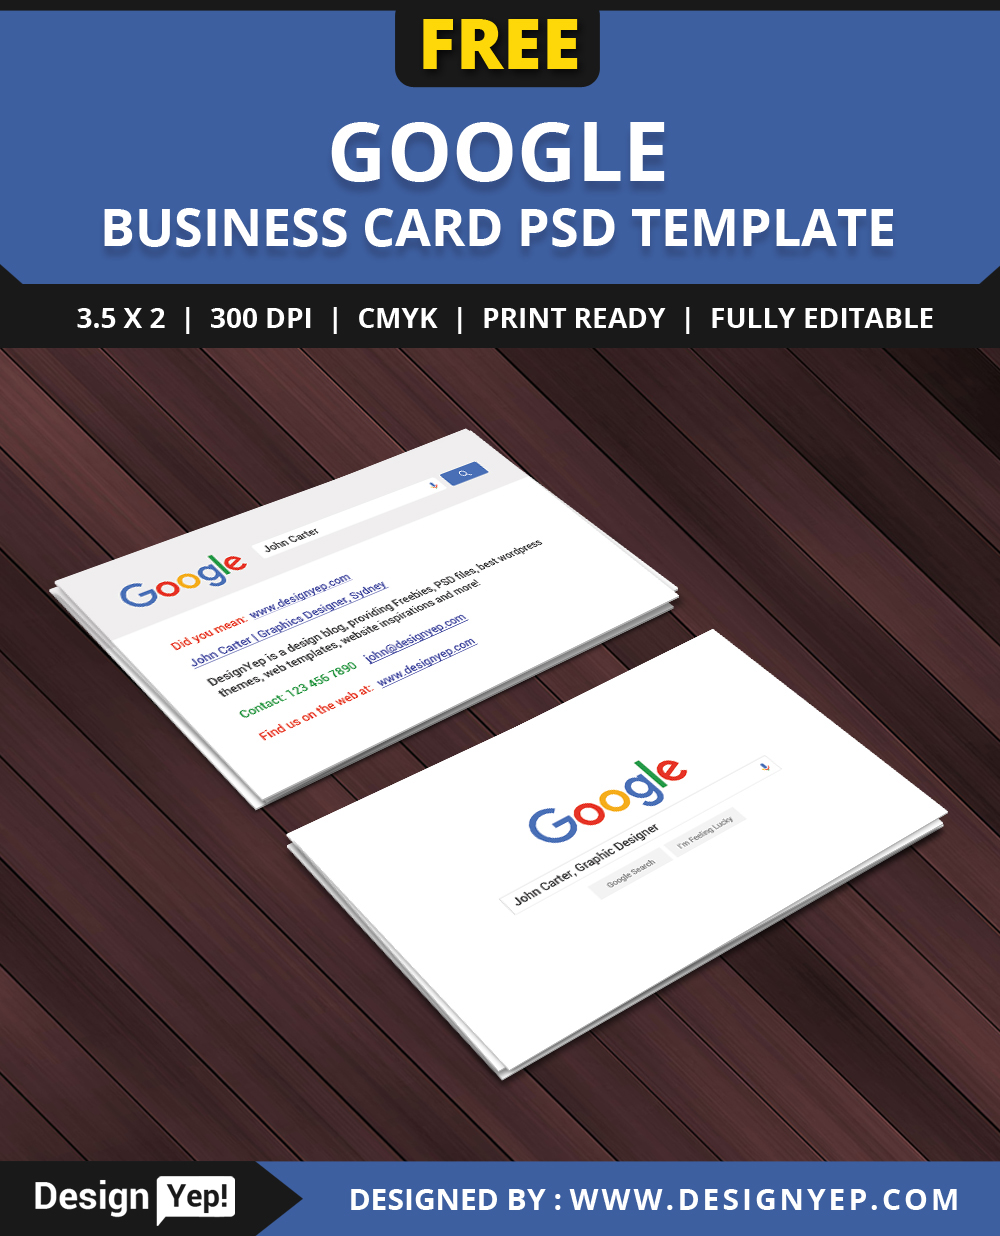 Free google interface business card psd template on behance wajeb